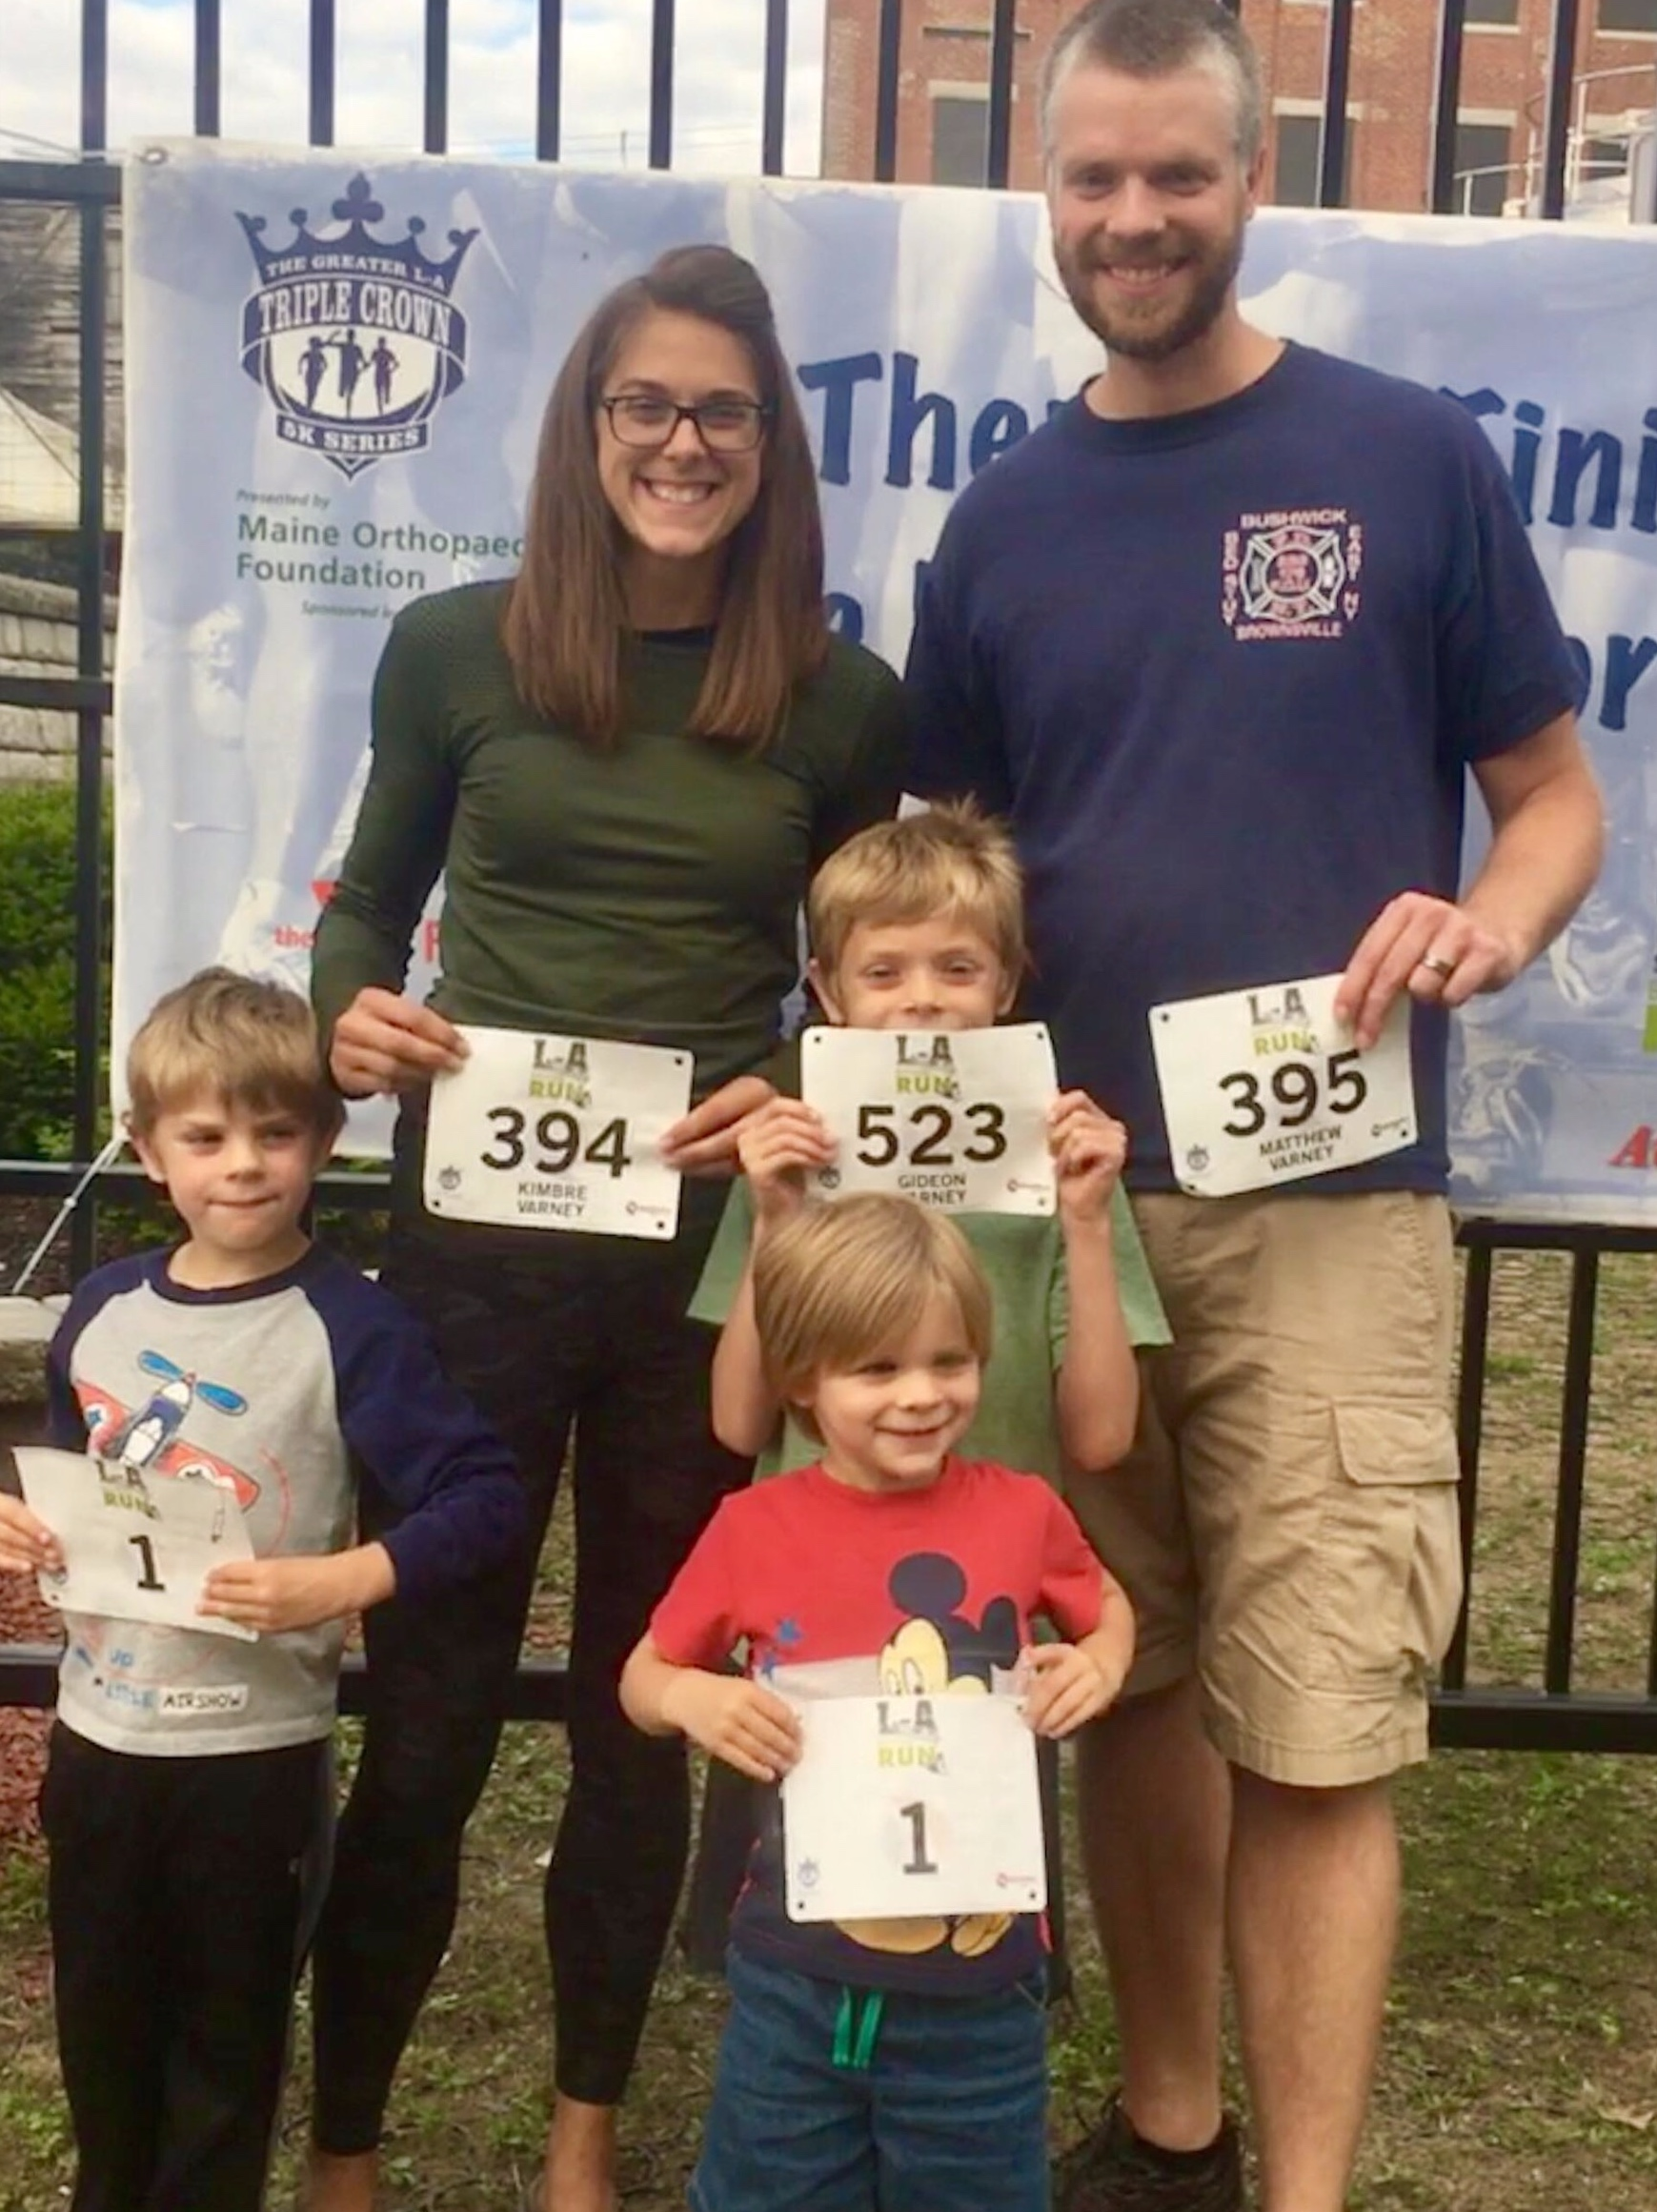 Kimbre and her husband Matt, and their 3 sons.